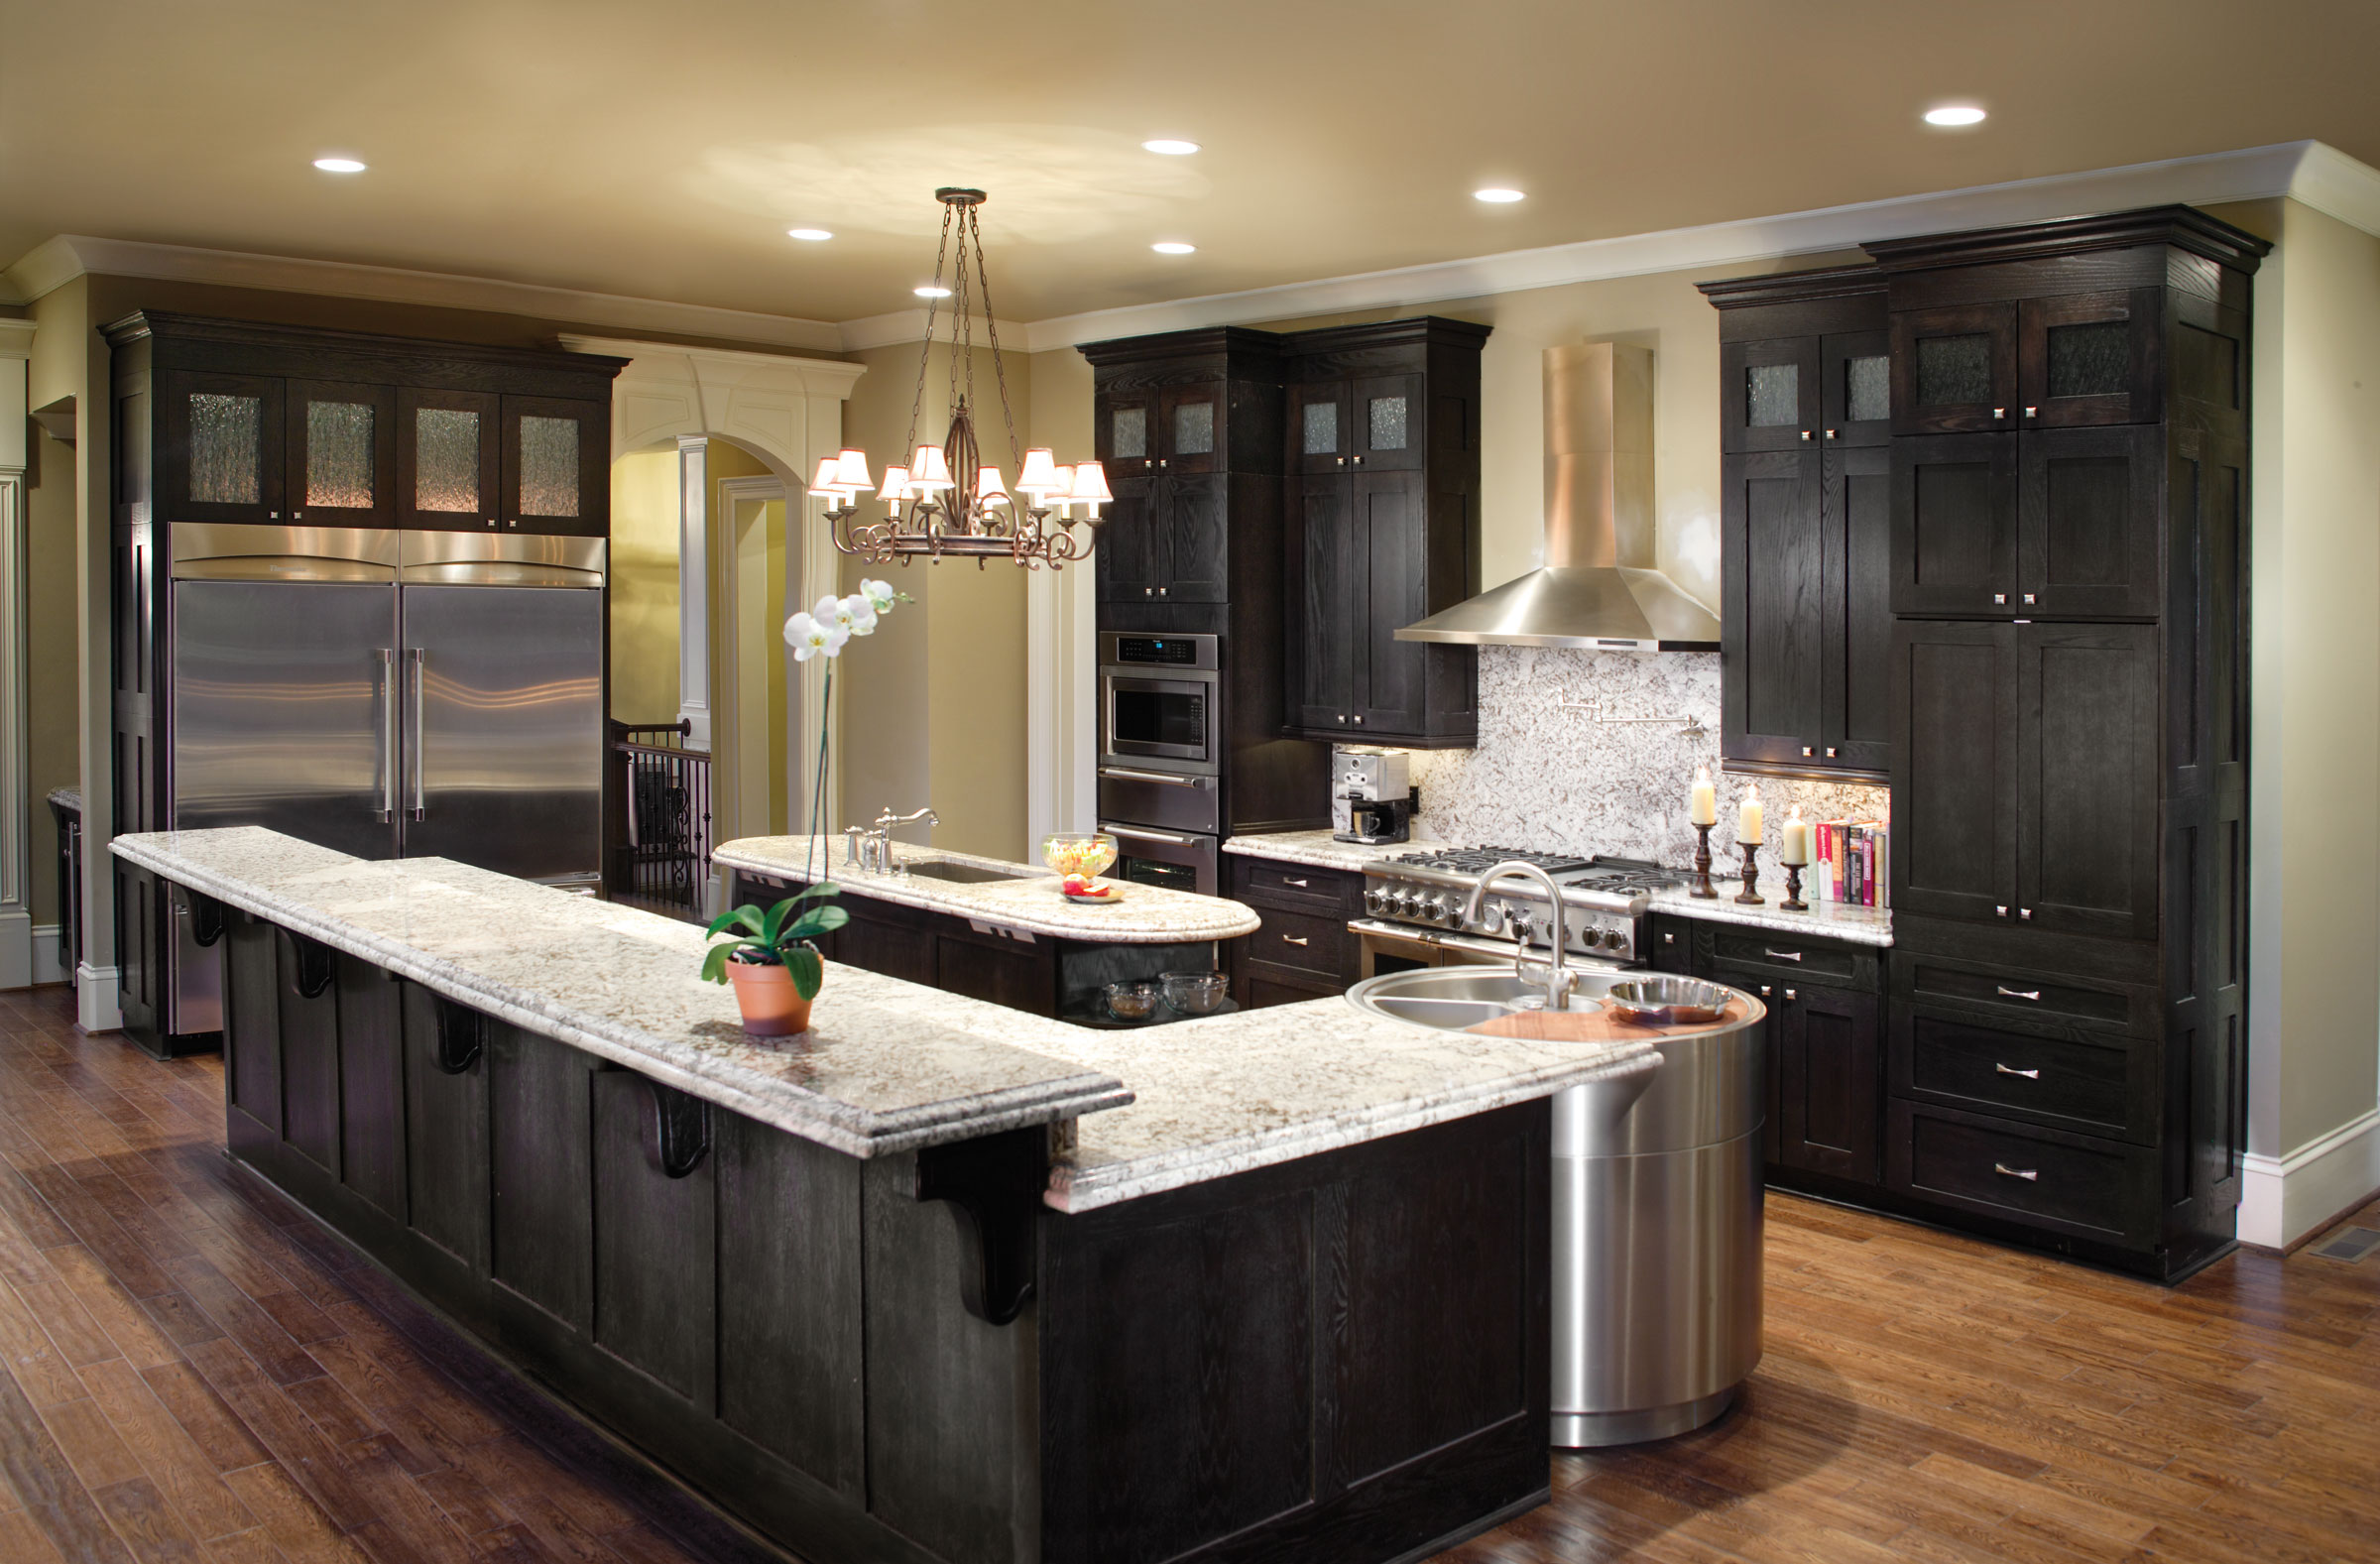 Kitchen Cabinets Rockville Md custom kitchen designs | home design ideas